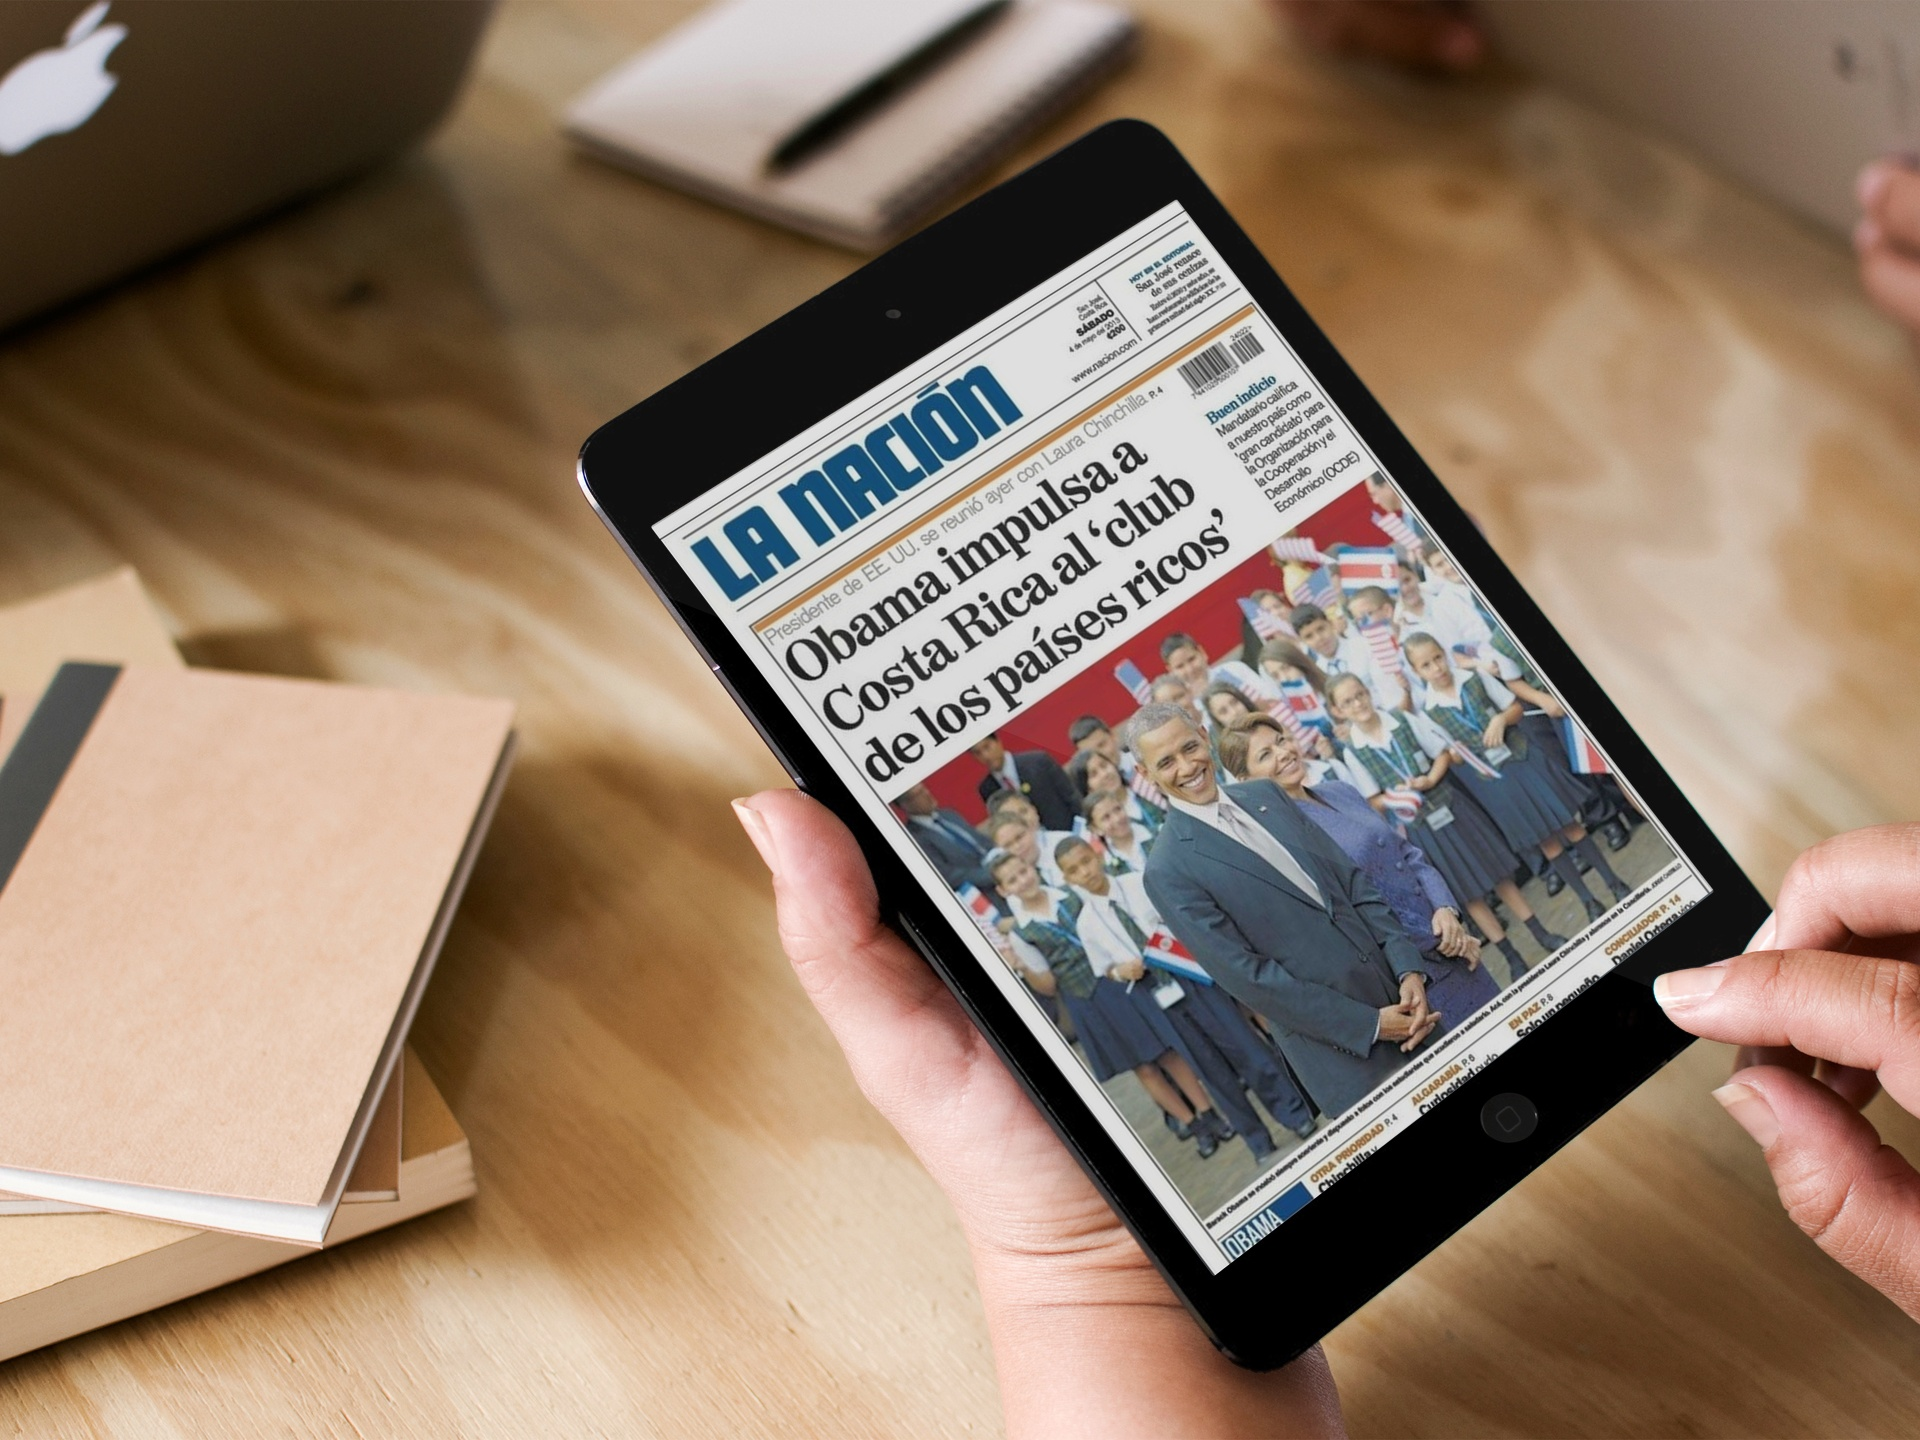 Evolok Appointed By Grupo Nación S.A., largest publisher in Costa Rica to provide Paywall and Identity Solution.